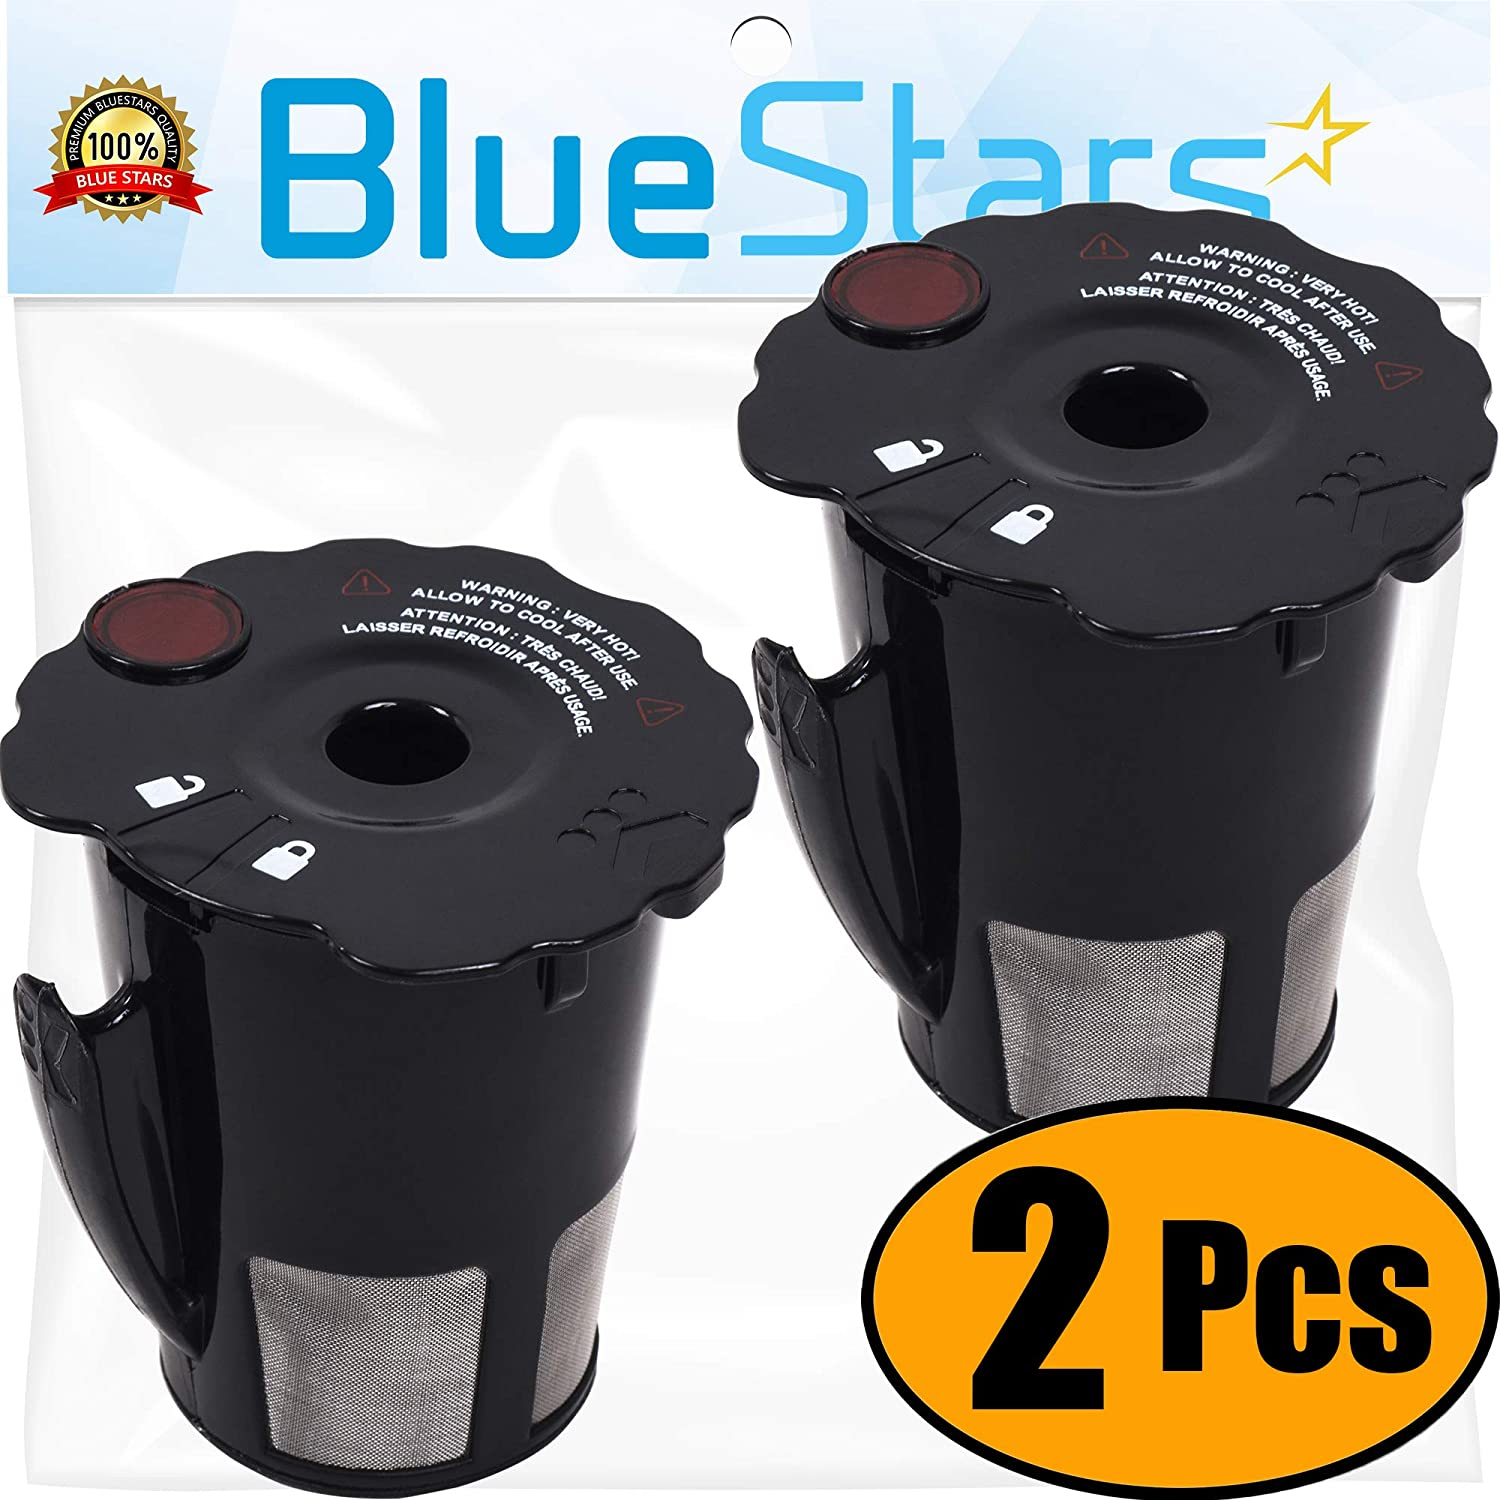 119367 Reusable Coffee Filter Replacement Part by Blue Stars – Exact Fit For Keurig K-cup 2.0 Series Brewers - Model K200 K250 K300 K350 K400 K450 K460 K475 K460 K500 K550 K560 K575 - PACK OF 2